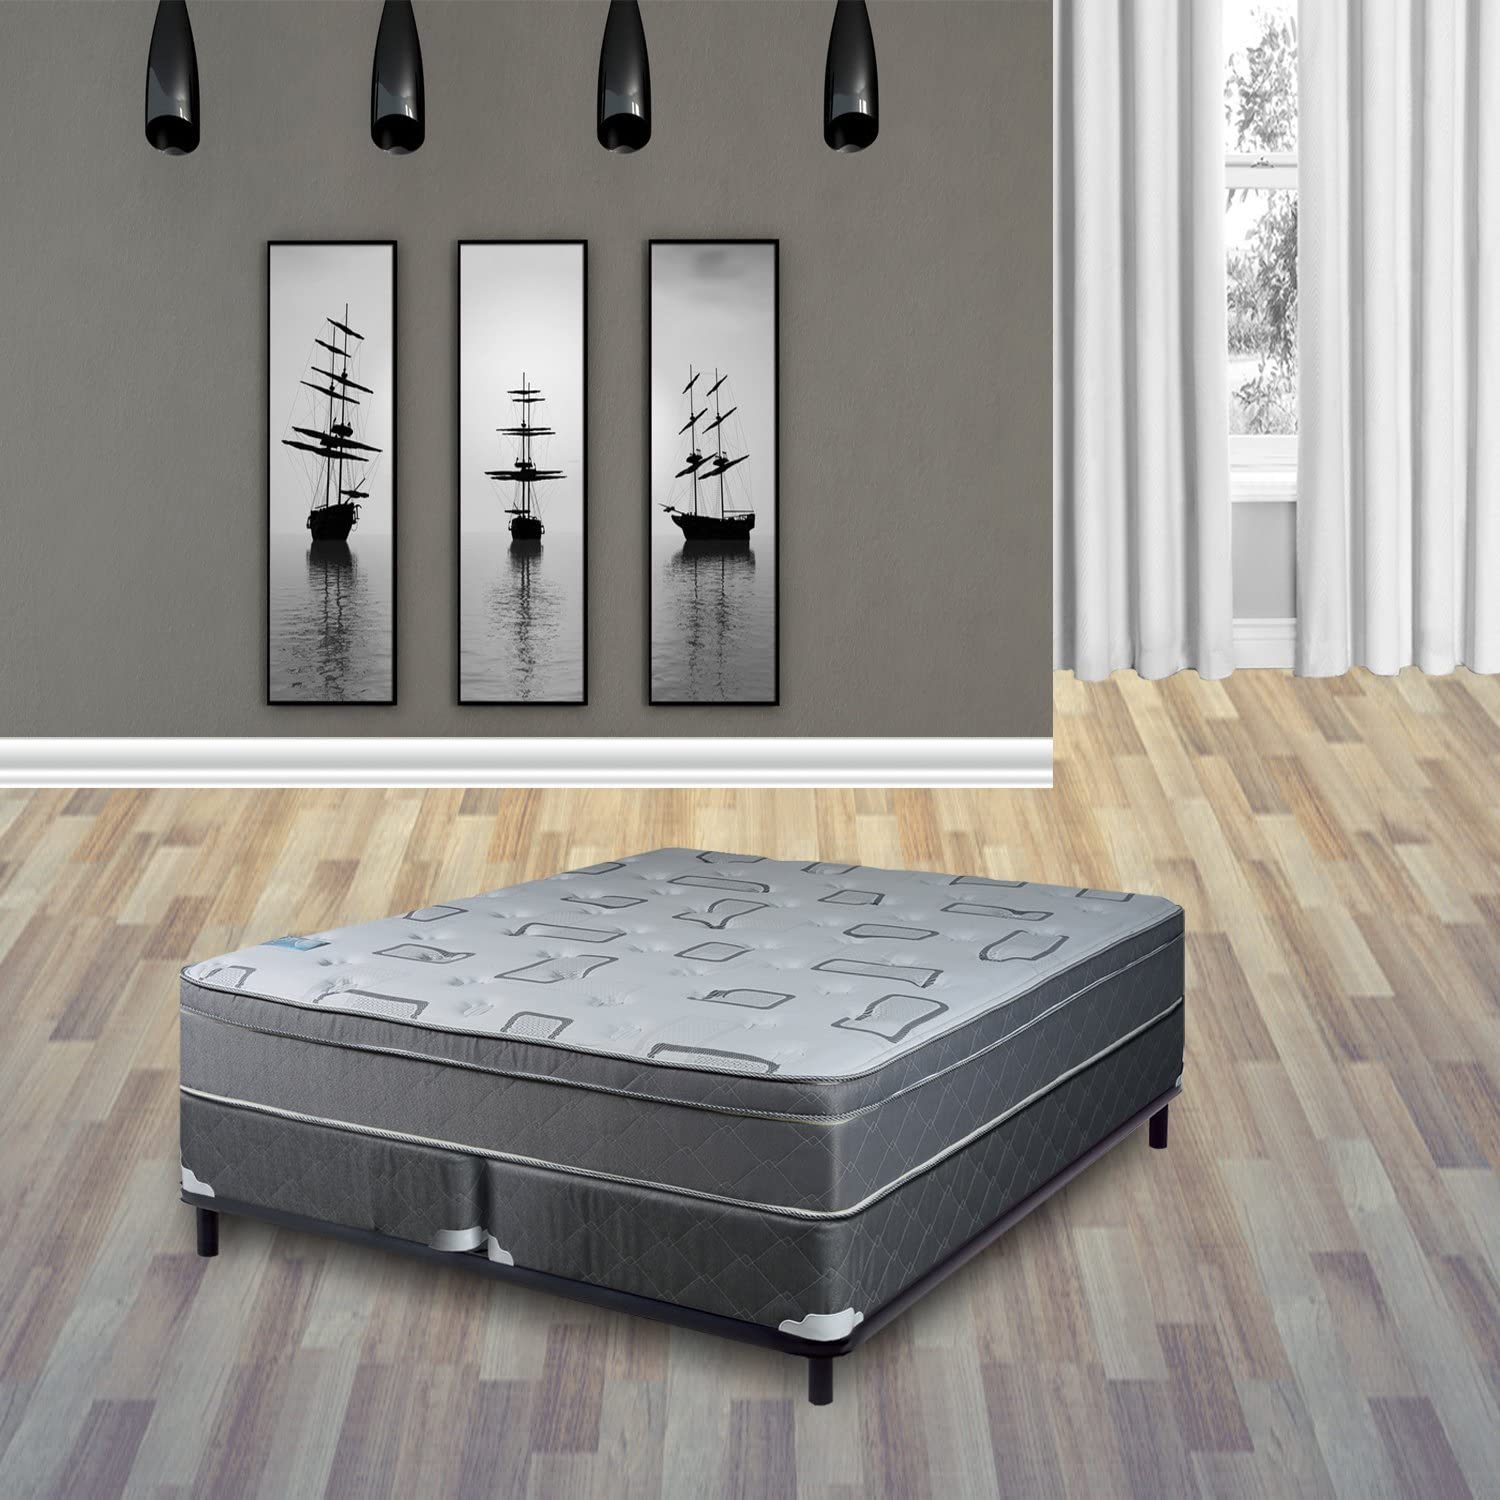 Continental Sleep Mattress 10 Inch Eurotop Pillowtop Fully Assembled Orthopedic Full Size Mattress with Split Box Spring Beautiful Rest Collection